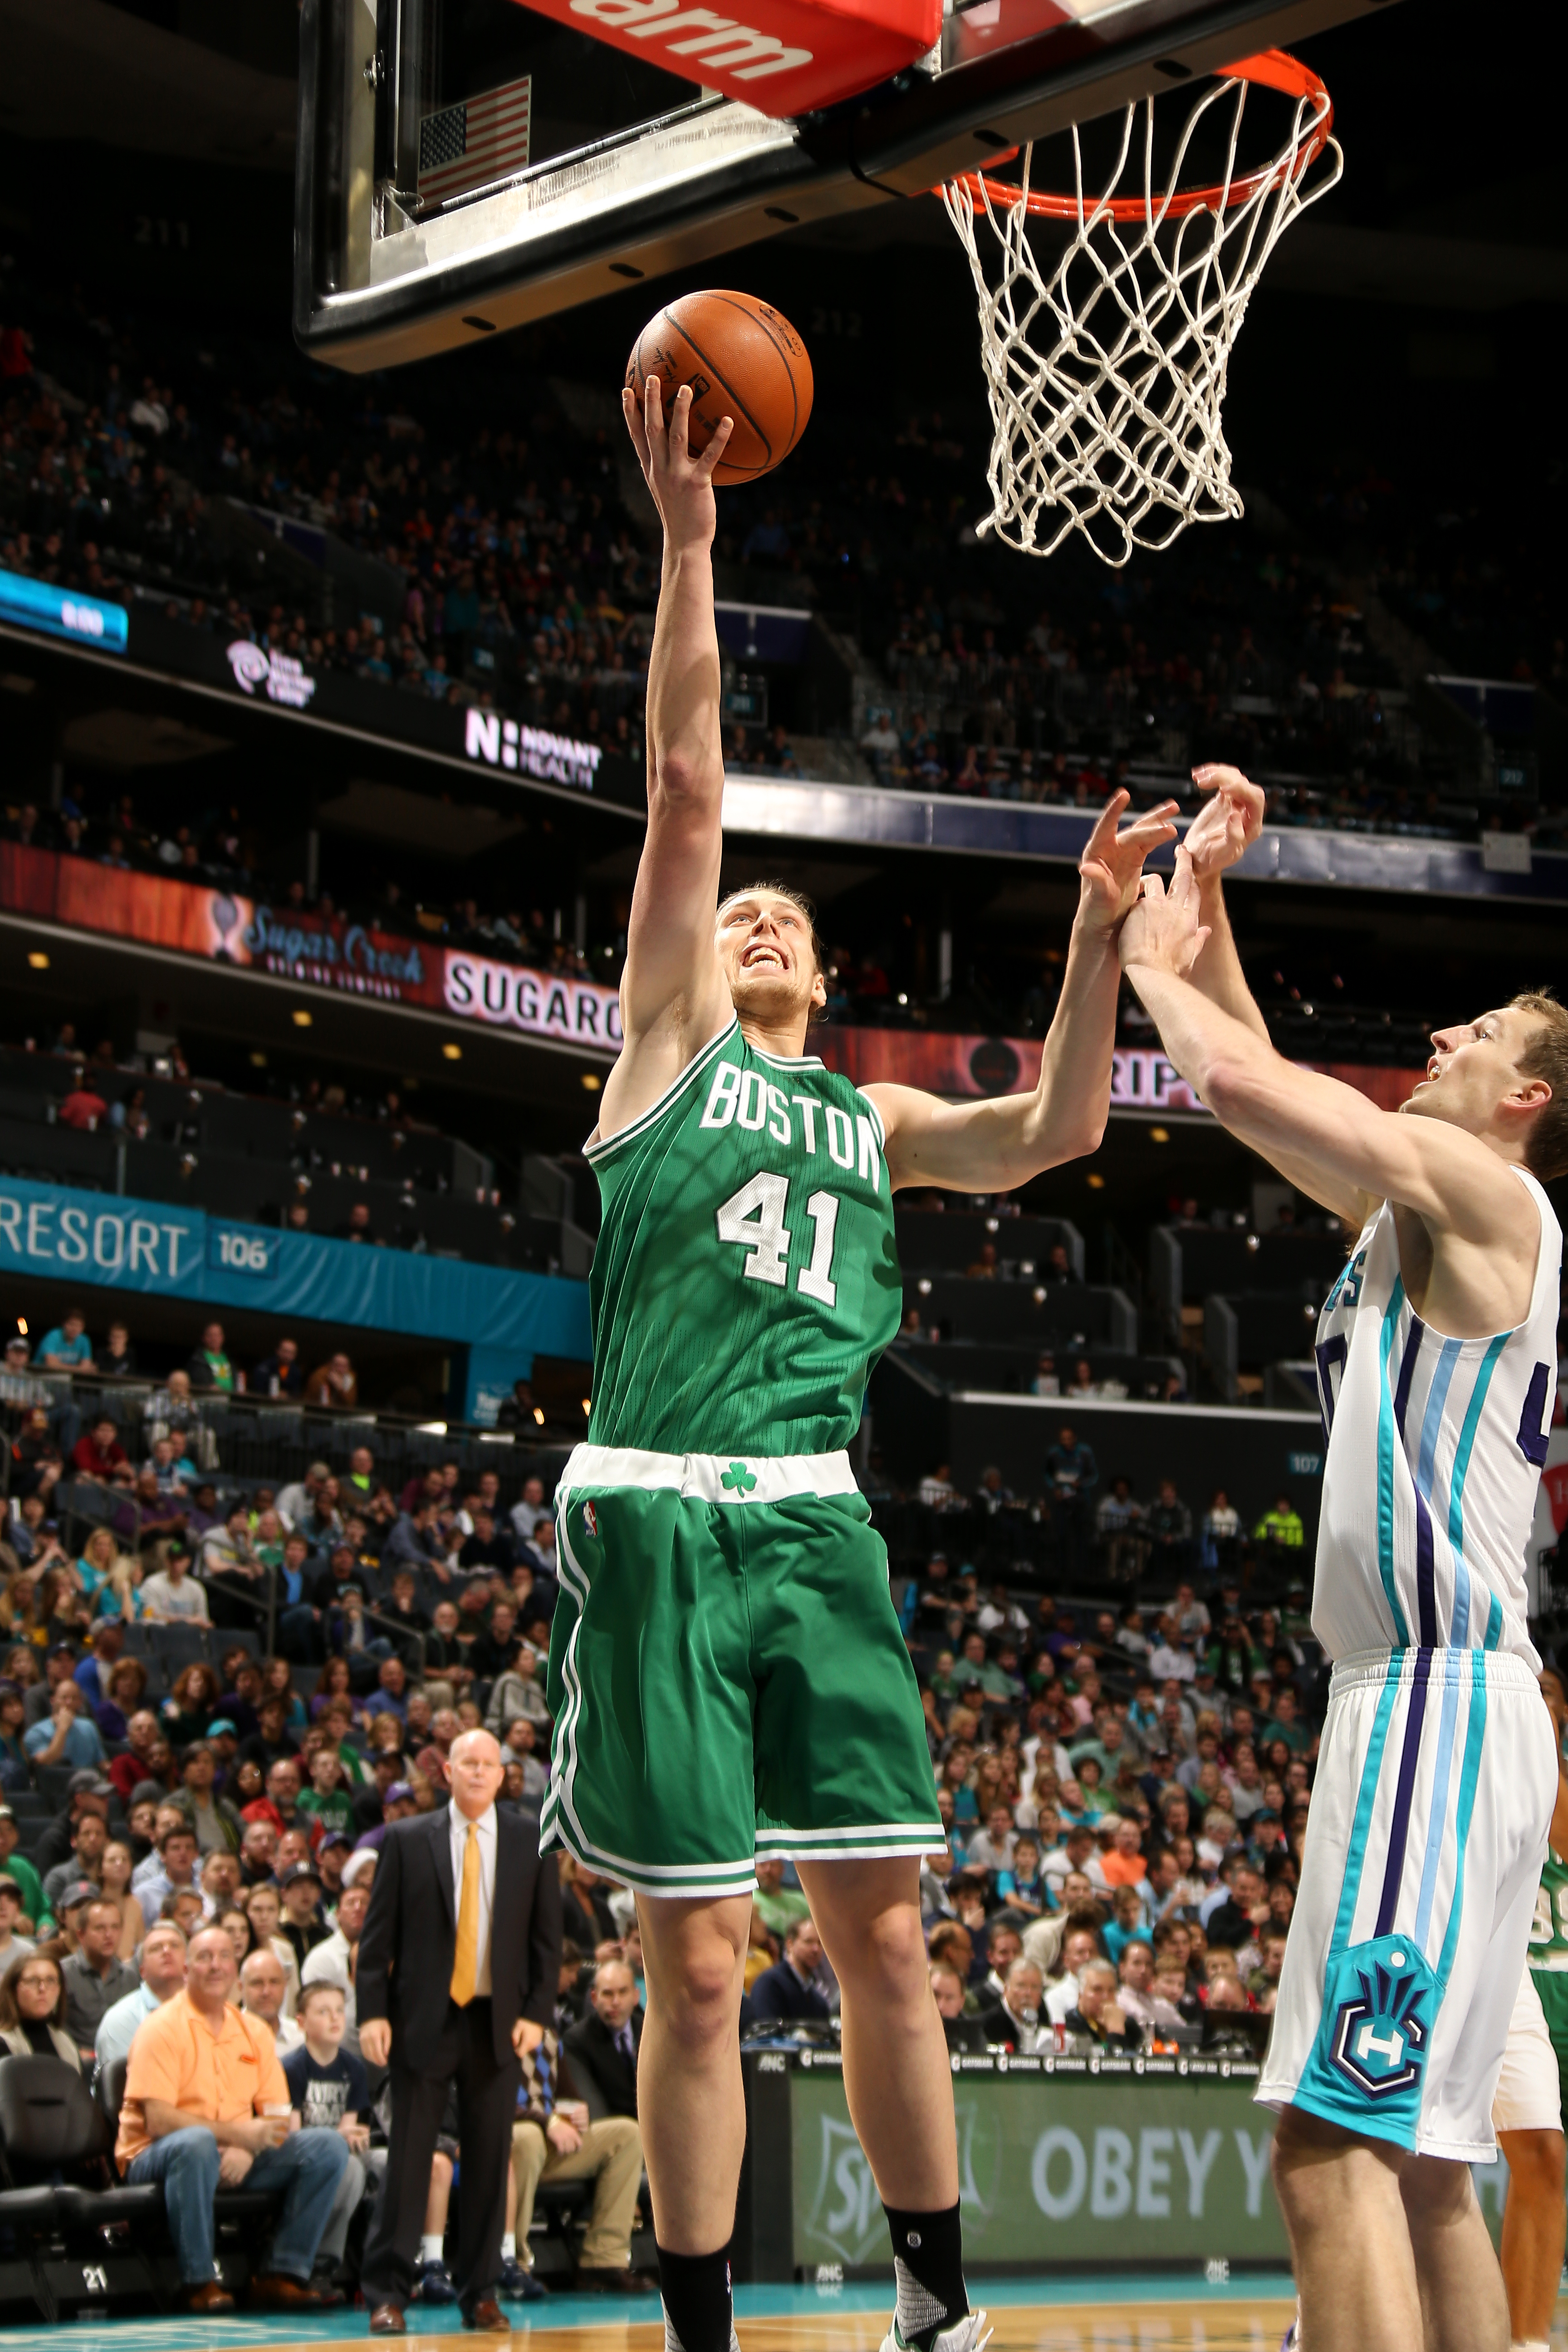 CHARLOTTE, NC - DECEMBER 23: Kelly Olynyk #41 of the Boston Celtics shoots a lay up during the game against the Charlotte Hornets on December 23, 2015 at Time Warner Cable Arena in Charlotte, North Carolina. (Photo by Kent Smith/NBAE via Getty Images)